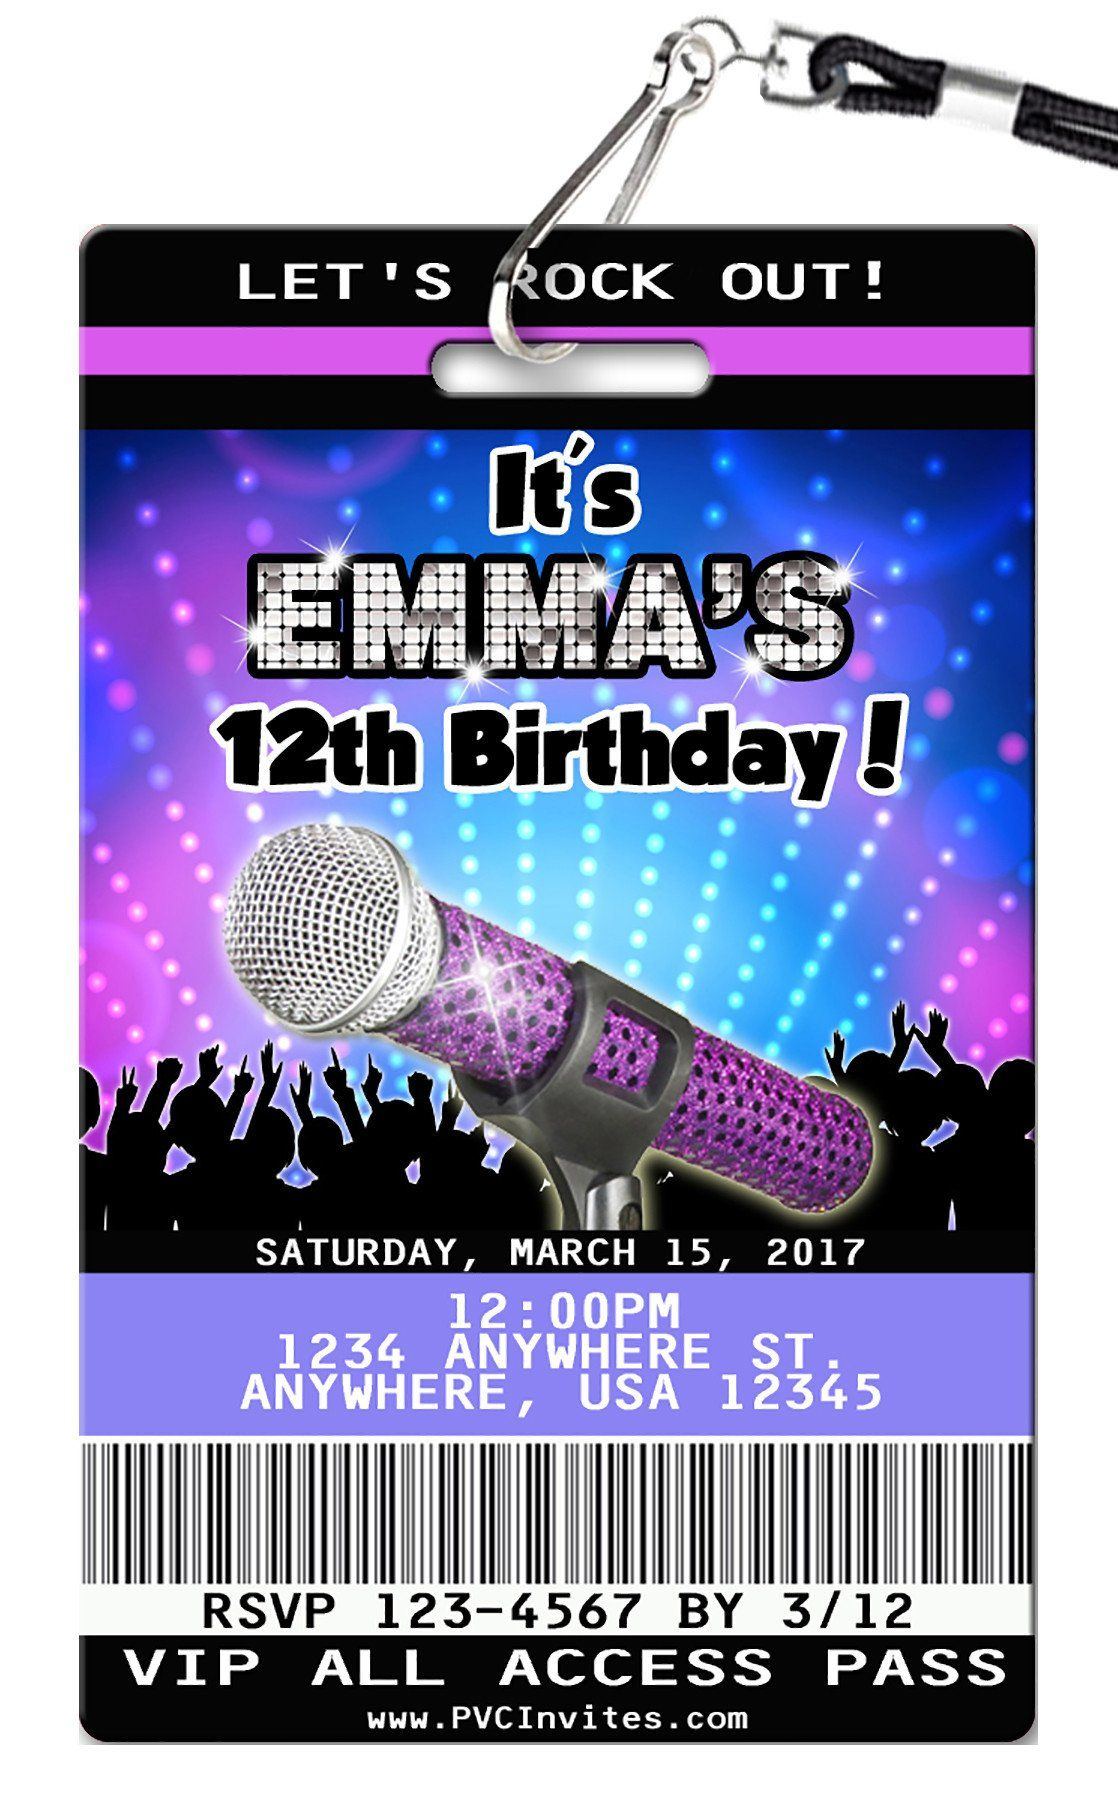 Karaoke Birthday Invitation | Karaoke and Birthdays